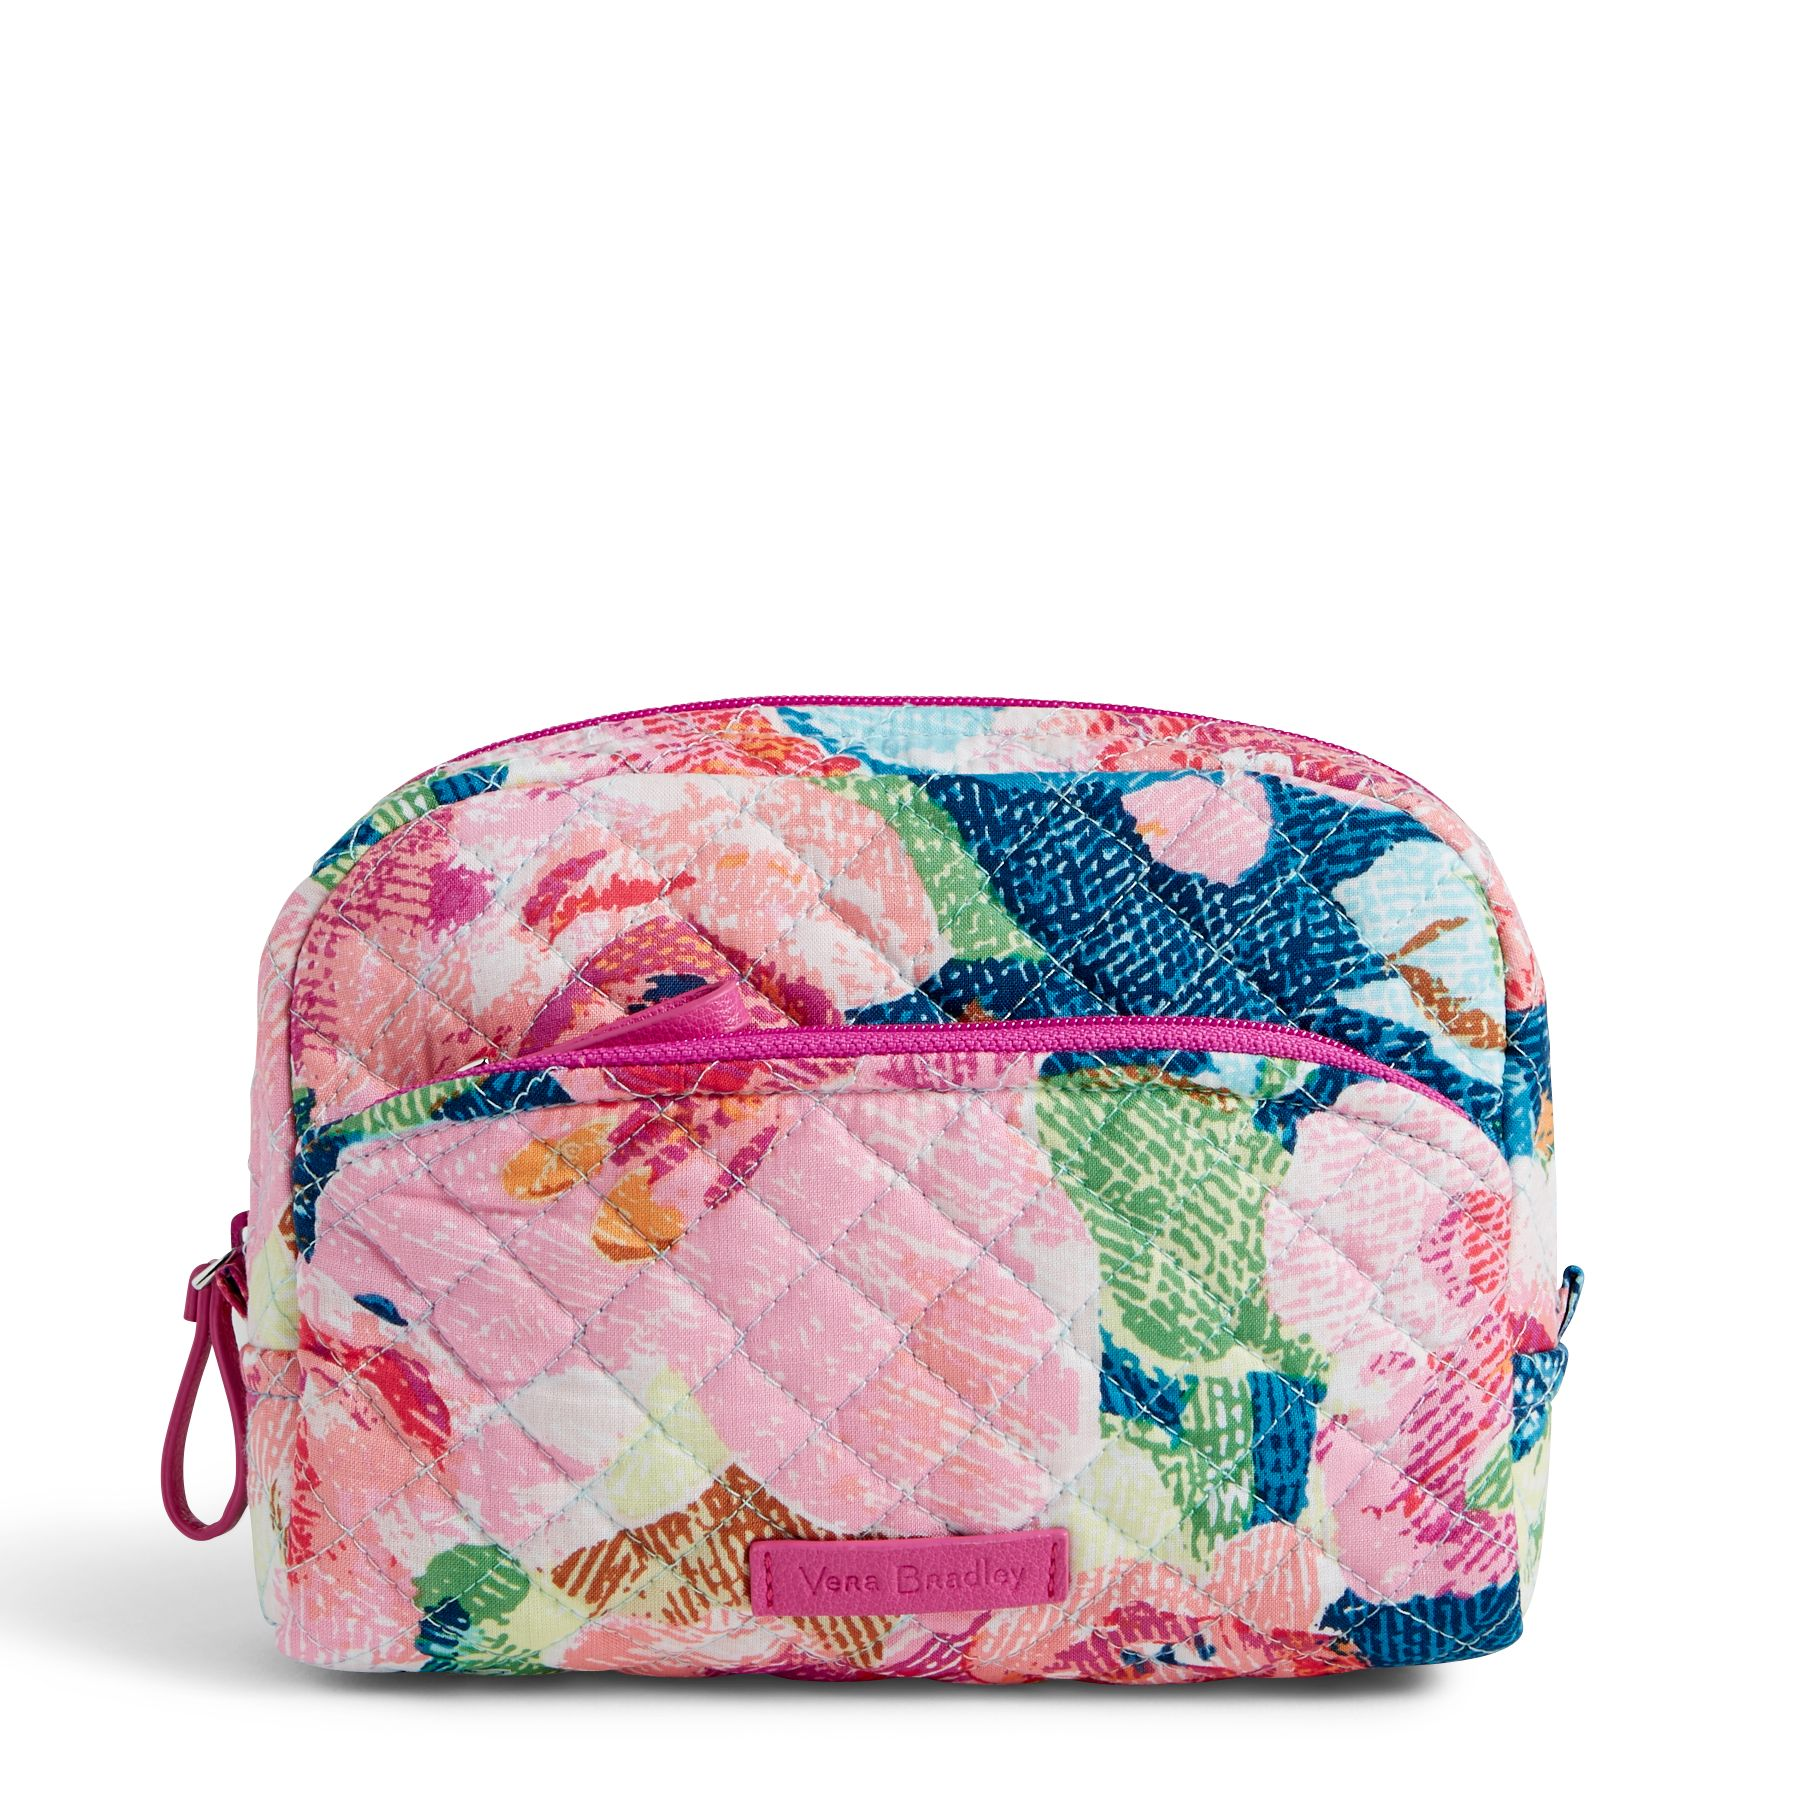 Shop Travel Organizers Great for Your Next Vacation Travel